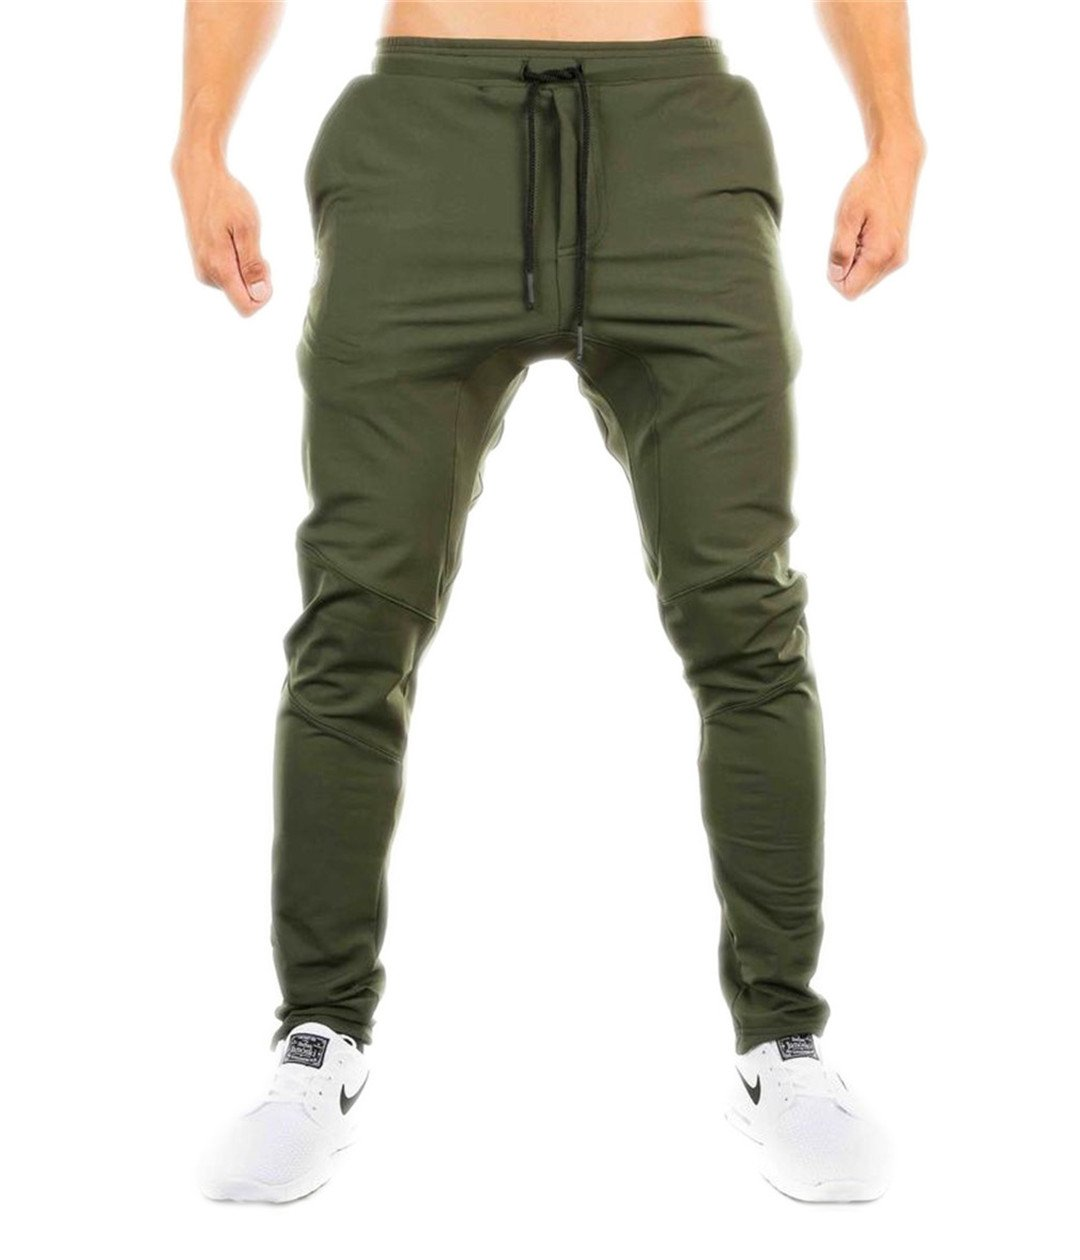 Bodybuilding Clothing Casual Fitness Sweatpants Army Green M